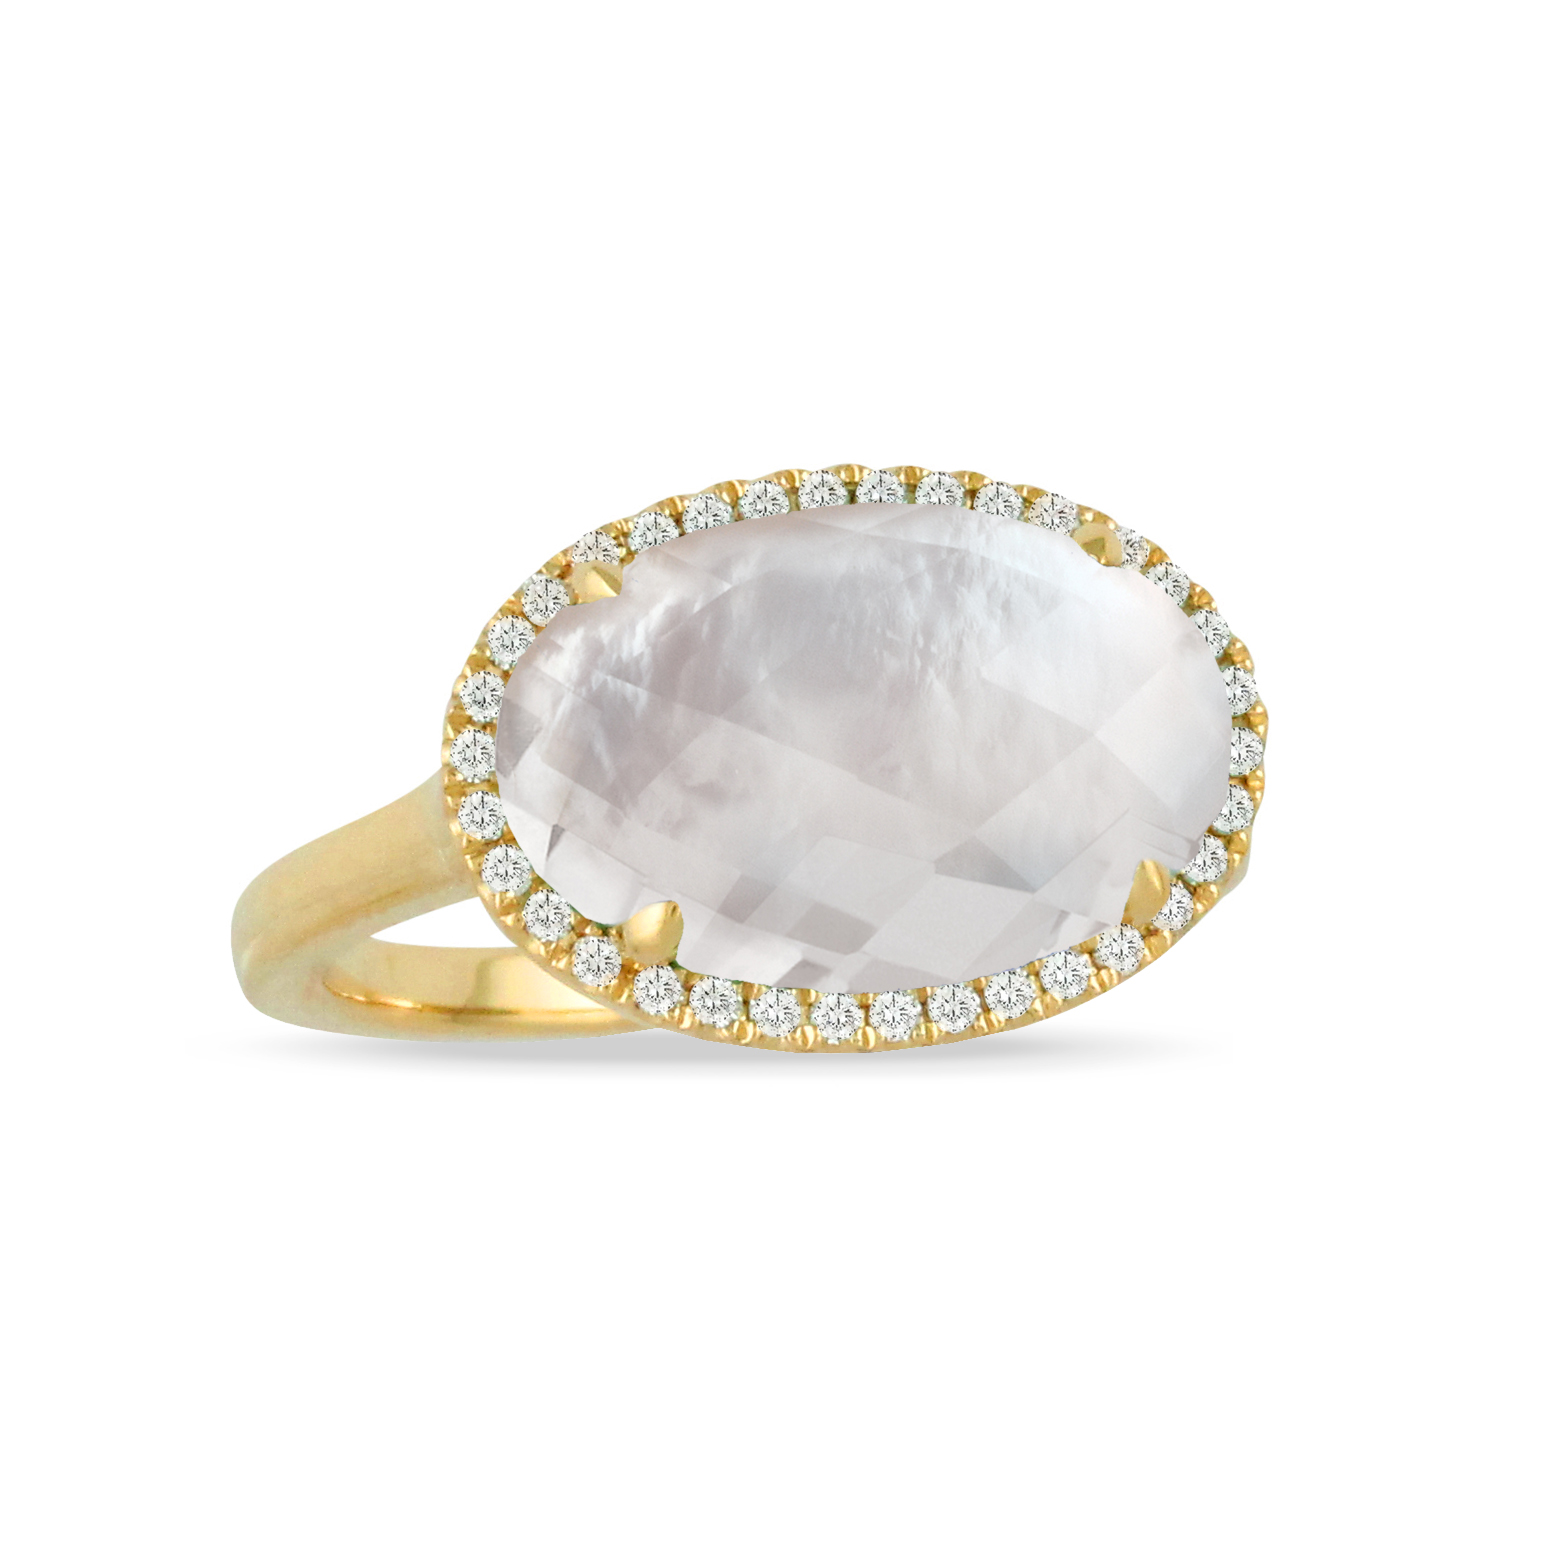 18K Yellow Gold Pearl Fashion Ring by Dove